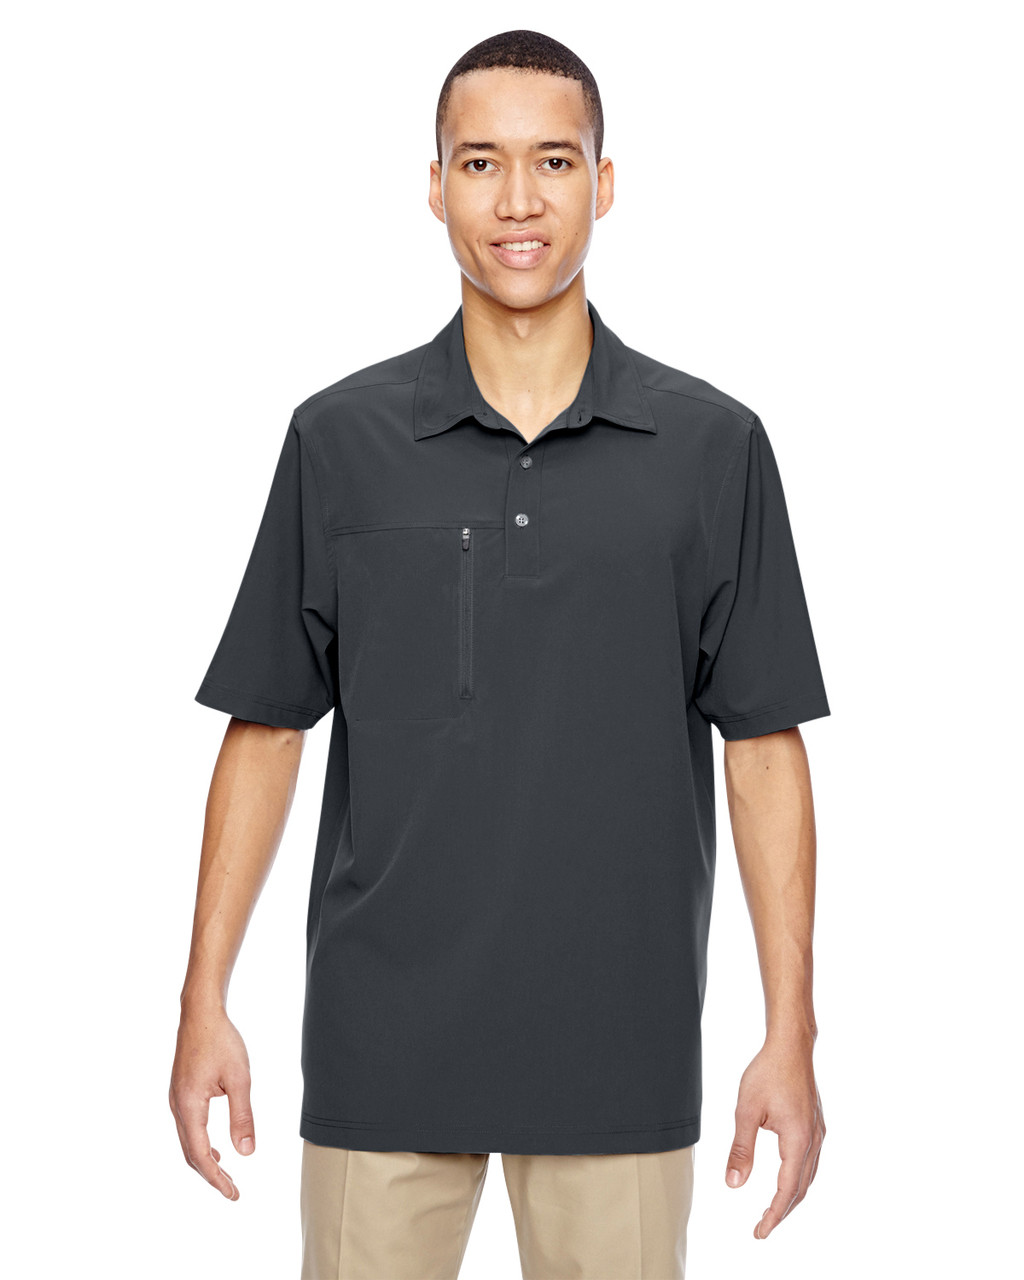 Graphite - 85120 North End Excursion Crosscheck Performance Woven Polo Shirt | Blankclothing.ca